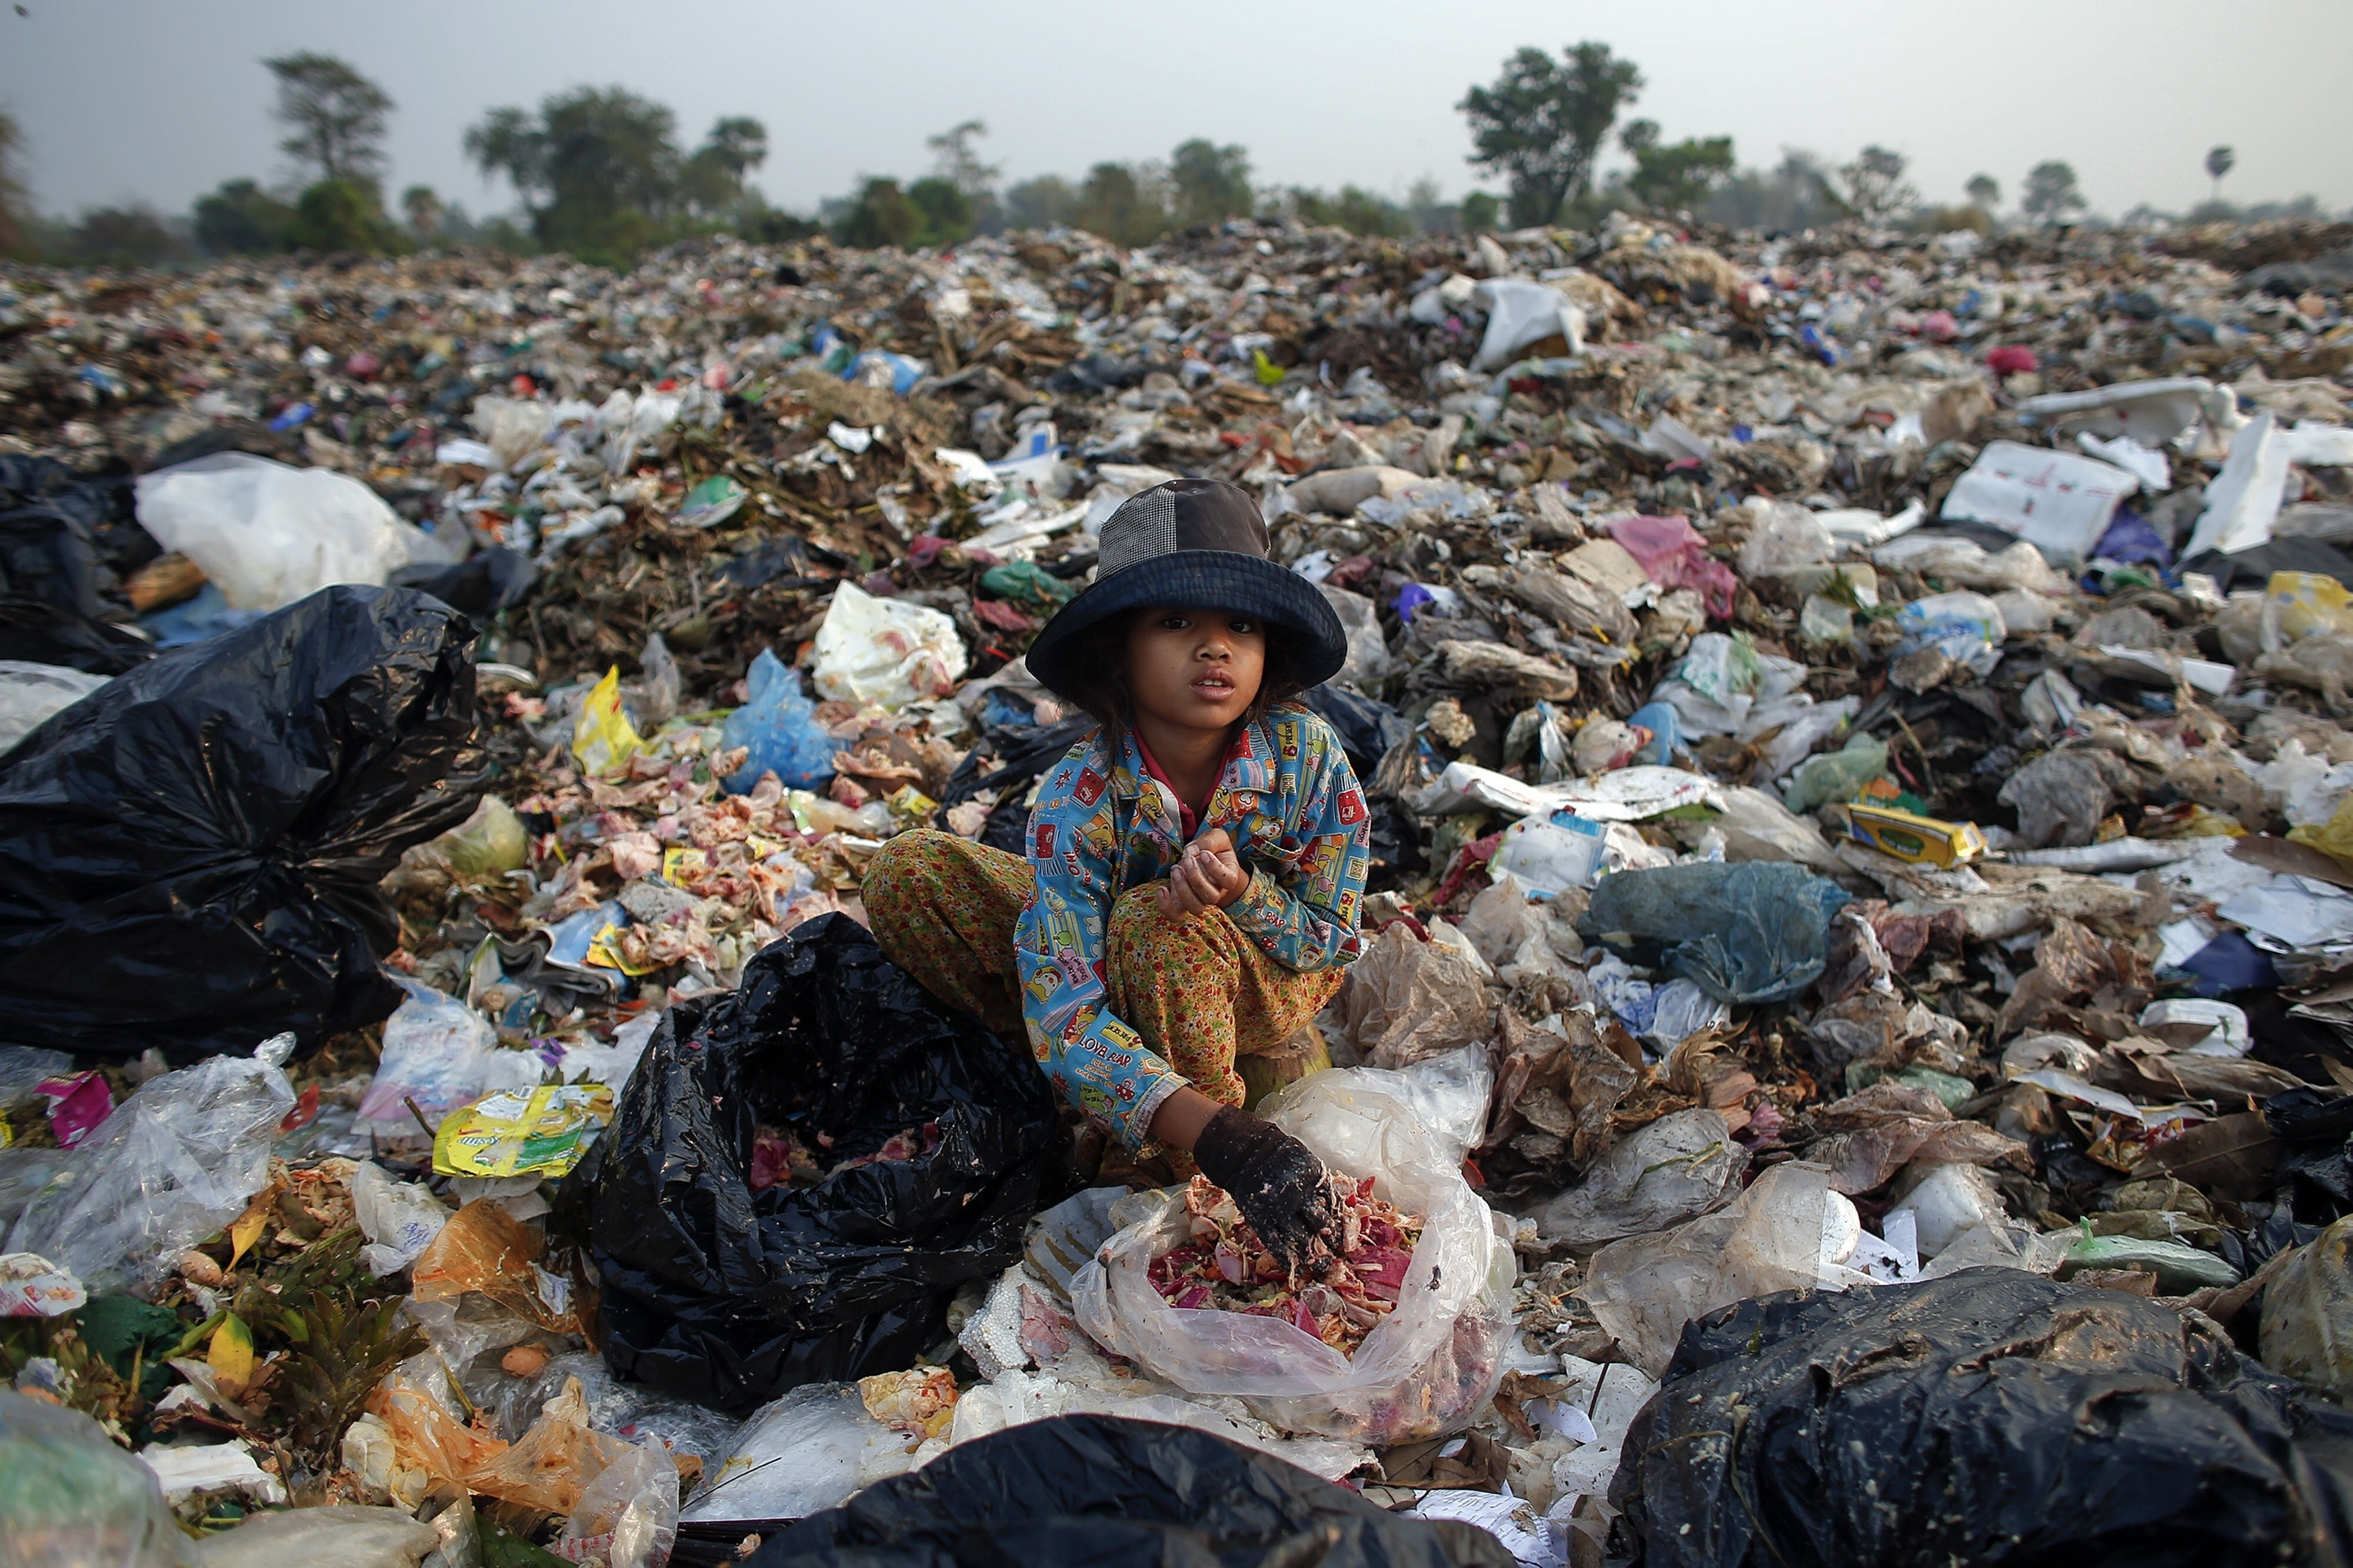 Soburn, an 11-year-old girl, collects what can be used as food for pigs at landfill dumpsite outside Siem Reap March 19, 2015. A second-grade student, she helps her parents in the morning collecting usable items at the dumpsite where they live before going to school in the afternoon. Anlong Pi, an eight-hectare dumpsite situated close to the famous Cambodian resort province of Siem Reap, has recently become a tourist attraction in its own right. Sightseers pose for pictures with children who scavenge scraps for a living, making between $0.25 and $2 per day, according to a representative of a company overseeing the waste. Michelle Obama is due to visit to Cambodia to promote Let Girls Learn, a worldwide initiative that aims to help adolescent girls attend school.   REUTERS/Athit PerawongmethaPICTURE 8 OF 23 FOR WIDER IMAGE STORY 'LIVING ON RUBBISH'SEARCH 'ANLONG PI' FOR ALL IMAGES - RTR4U4KB